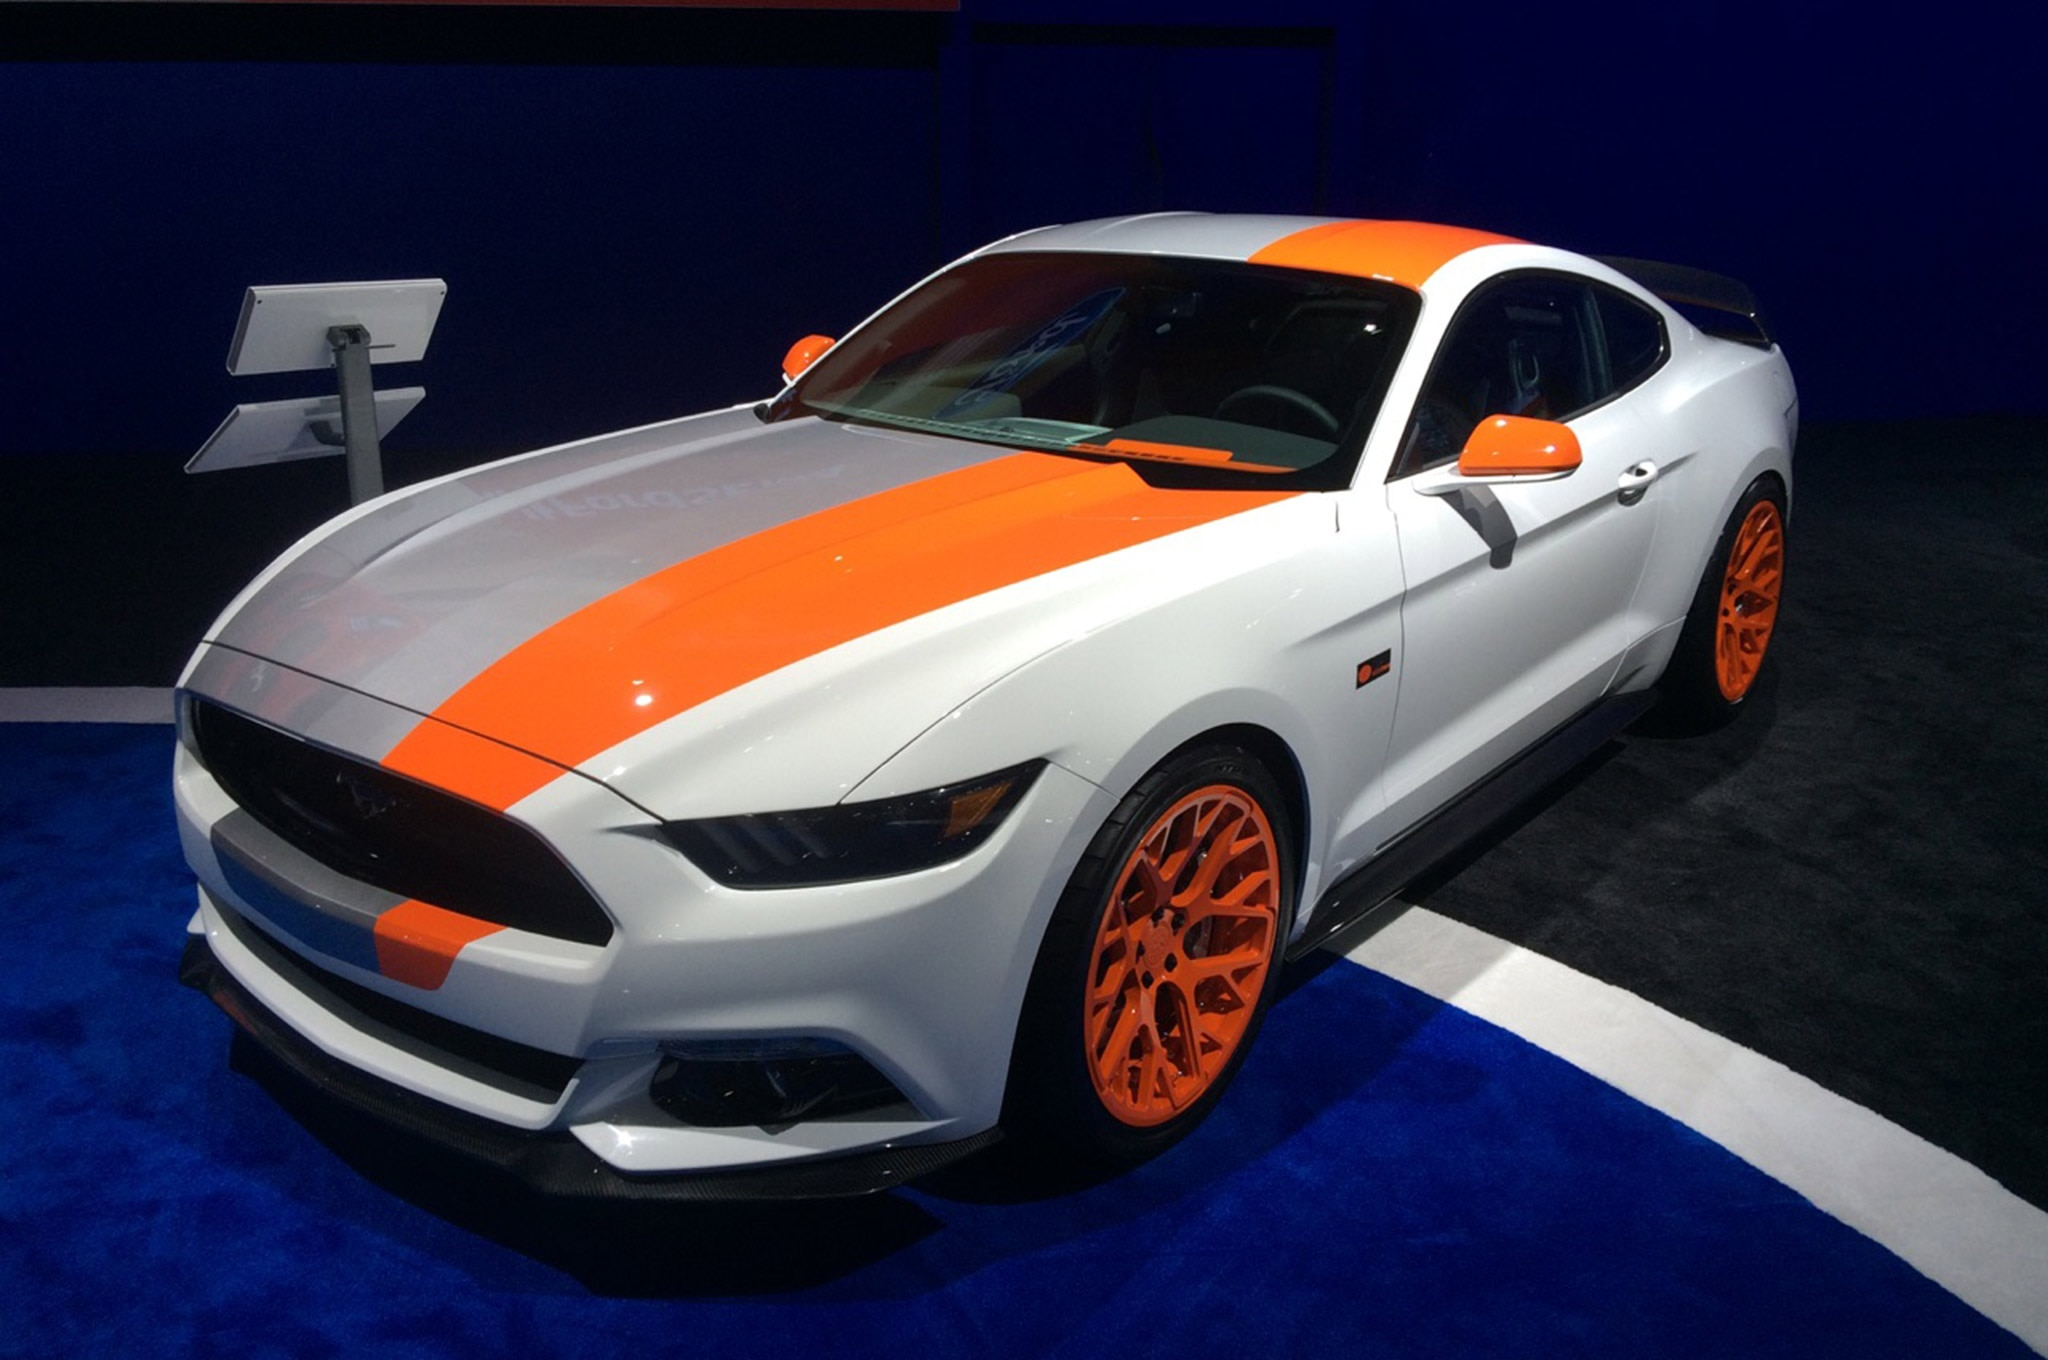 Ford Booth Sema 2015 Hot Vehicles 07 Bojix